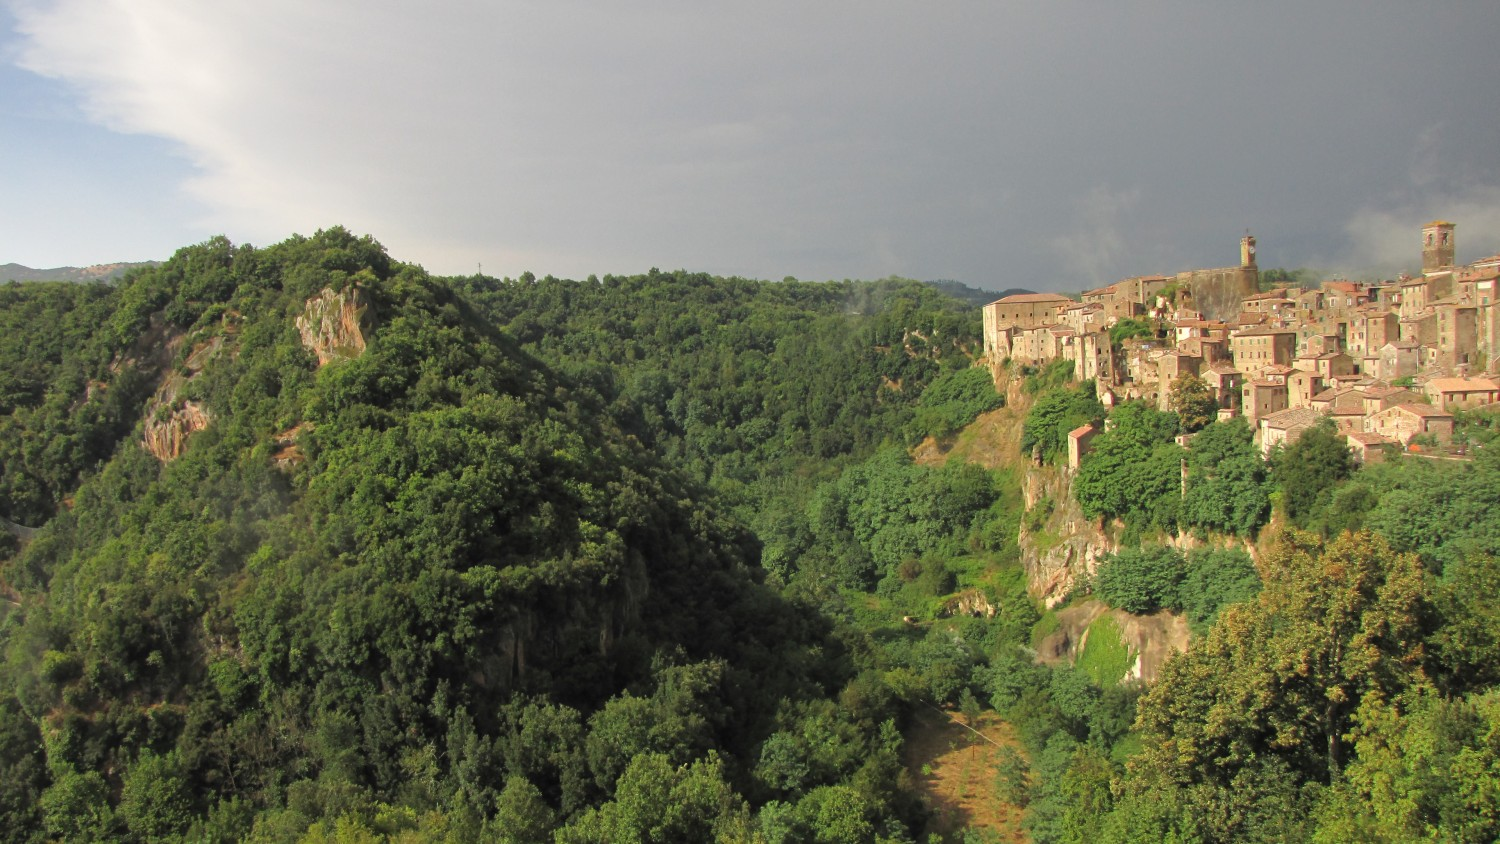 A view of Sorano [Photo Credits: Alessandro Zilio]